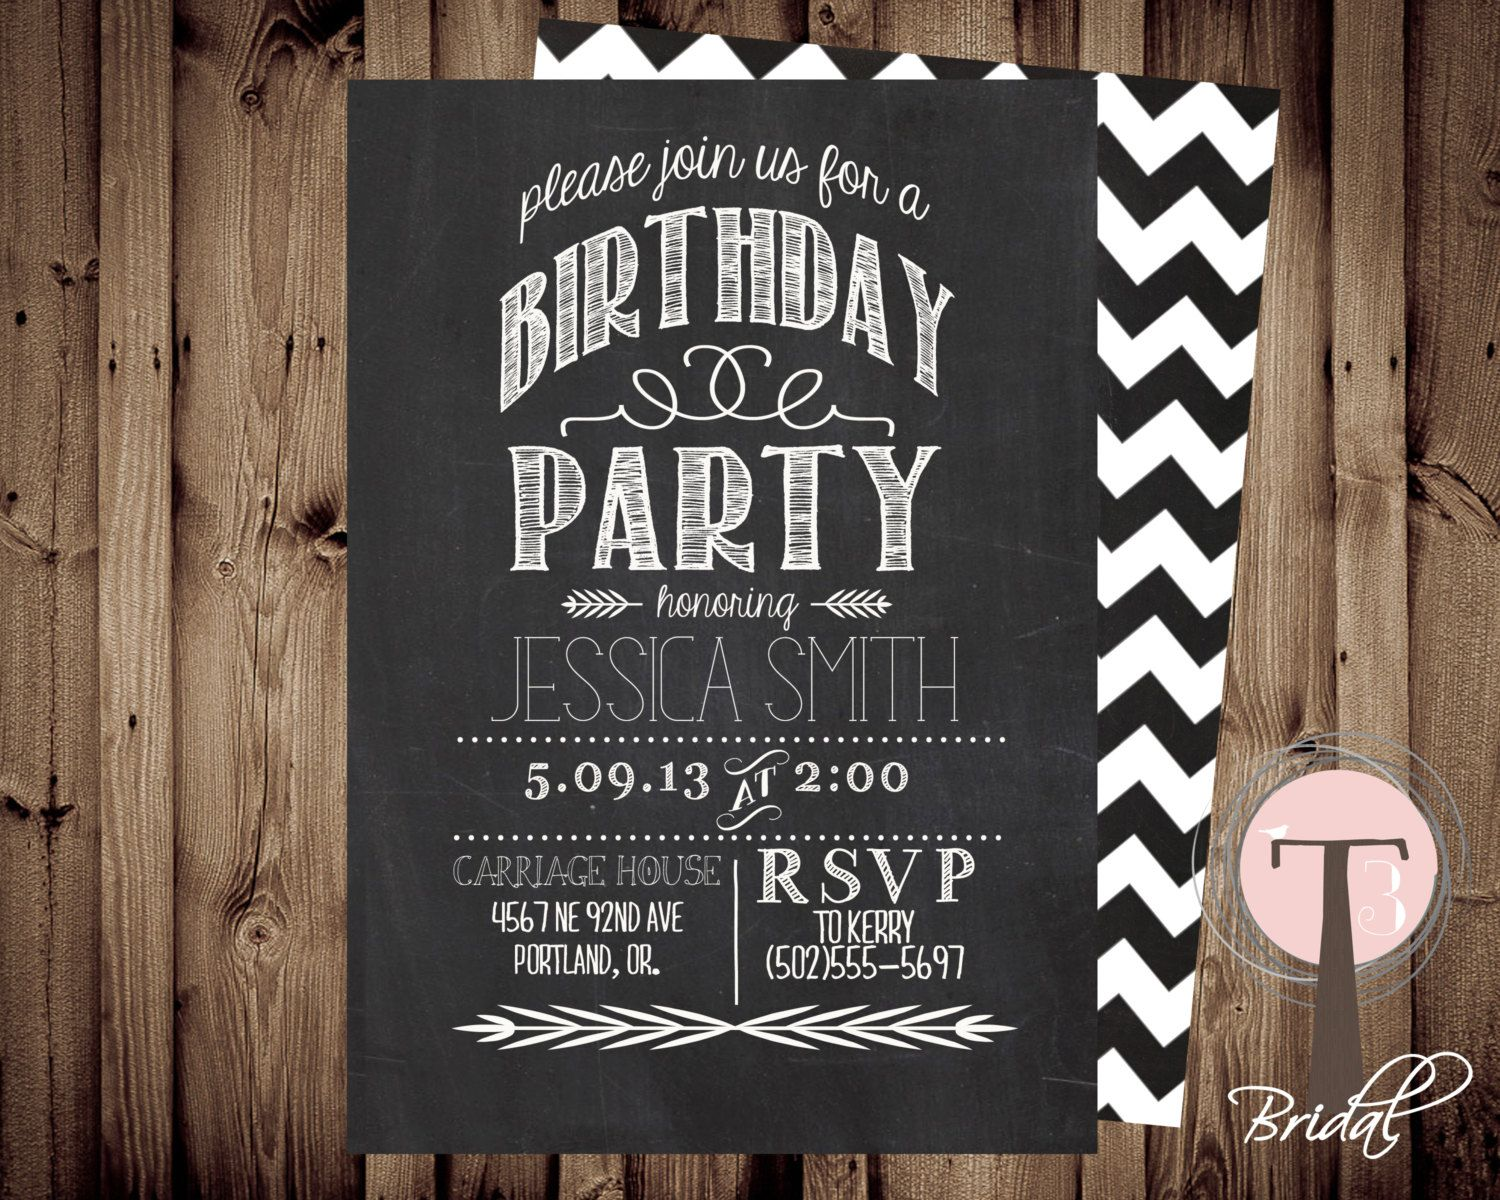 free 21st birthday invitation cards design ; 2ad997094f2a0640cd14dbe00be1ccf4